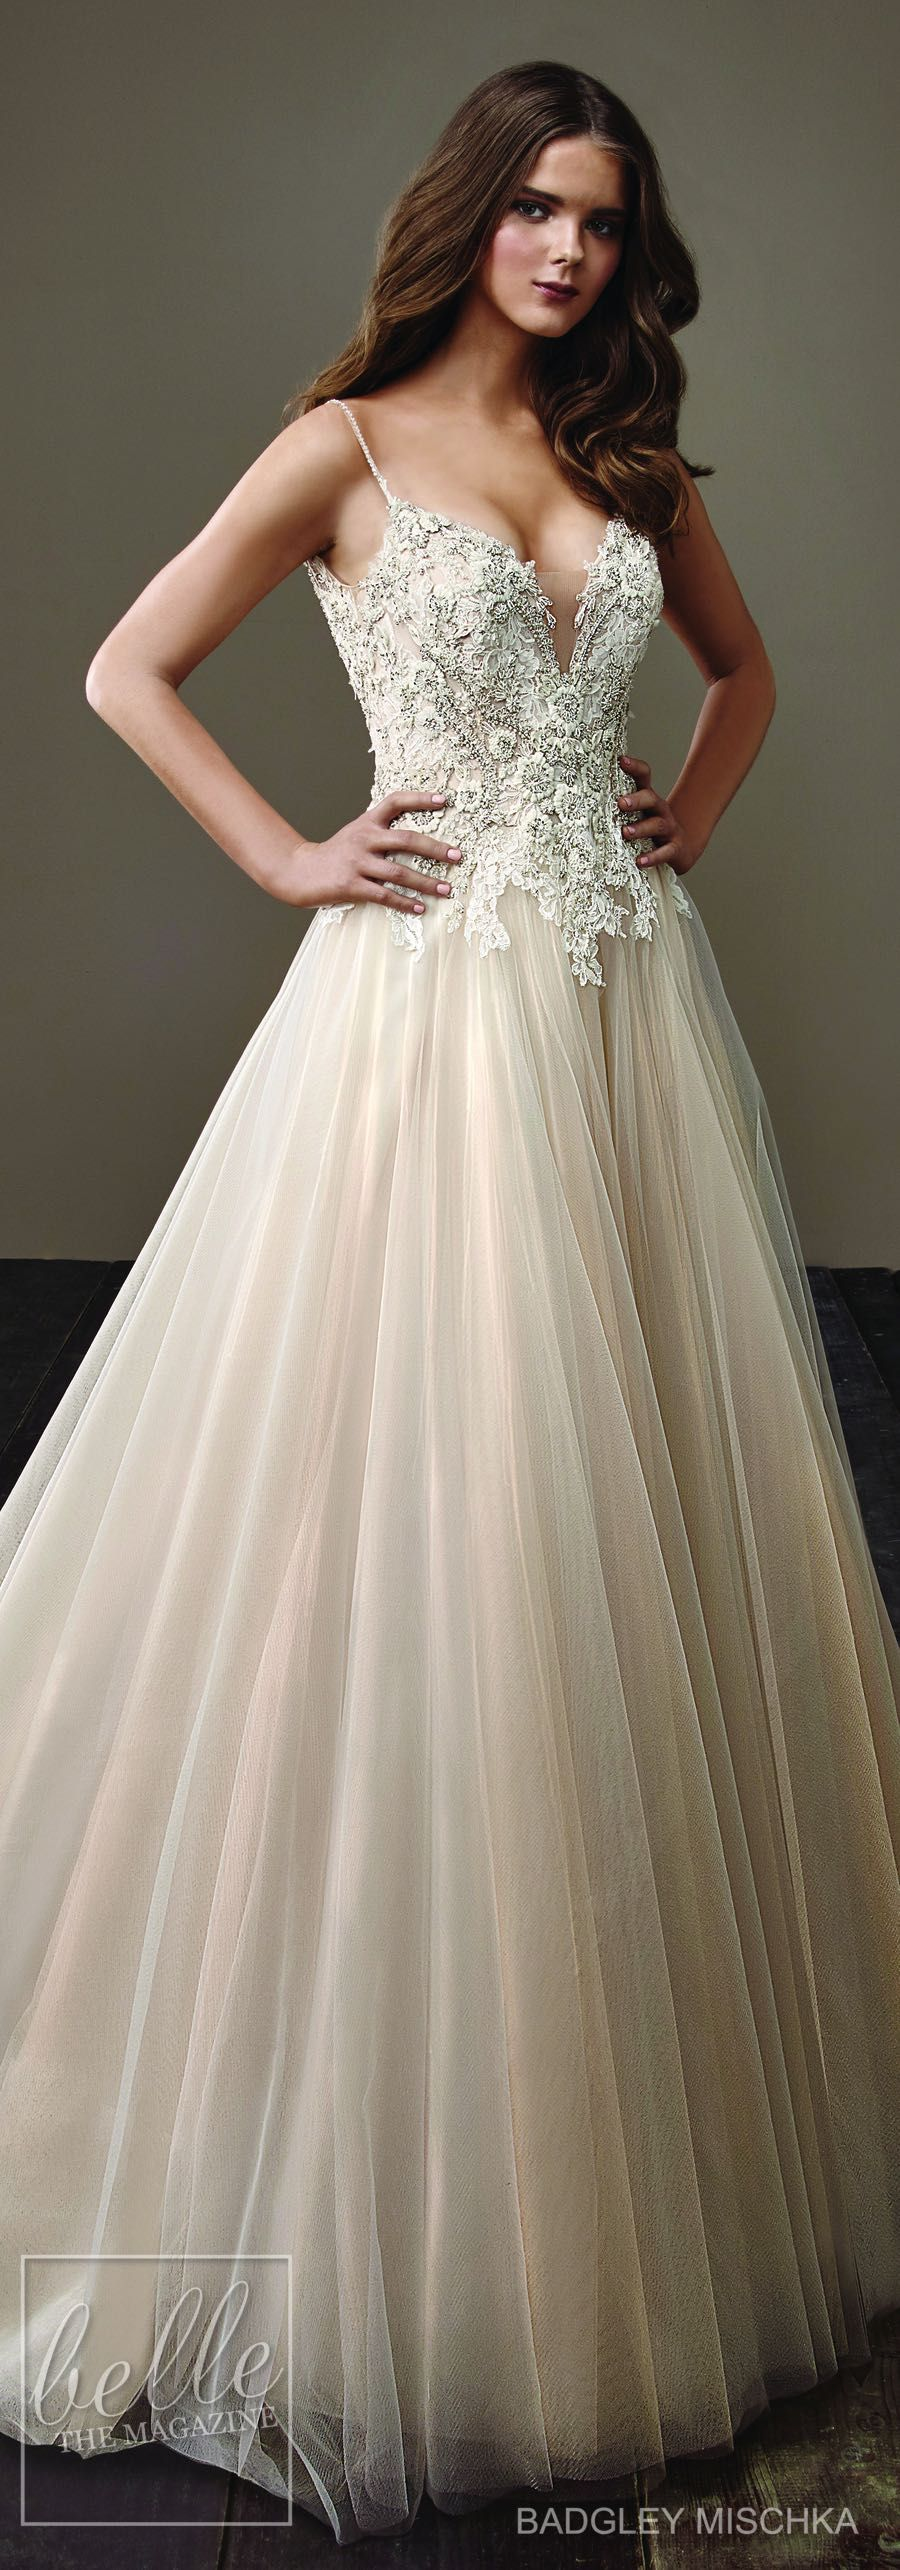 Wedding dresses by badgley mischka bride collection badgley